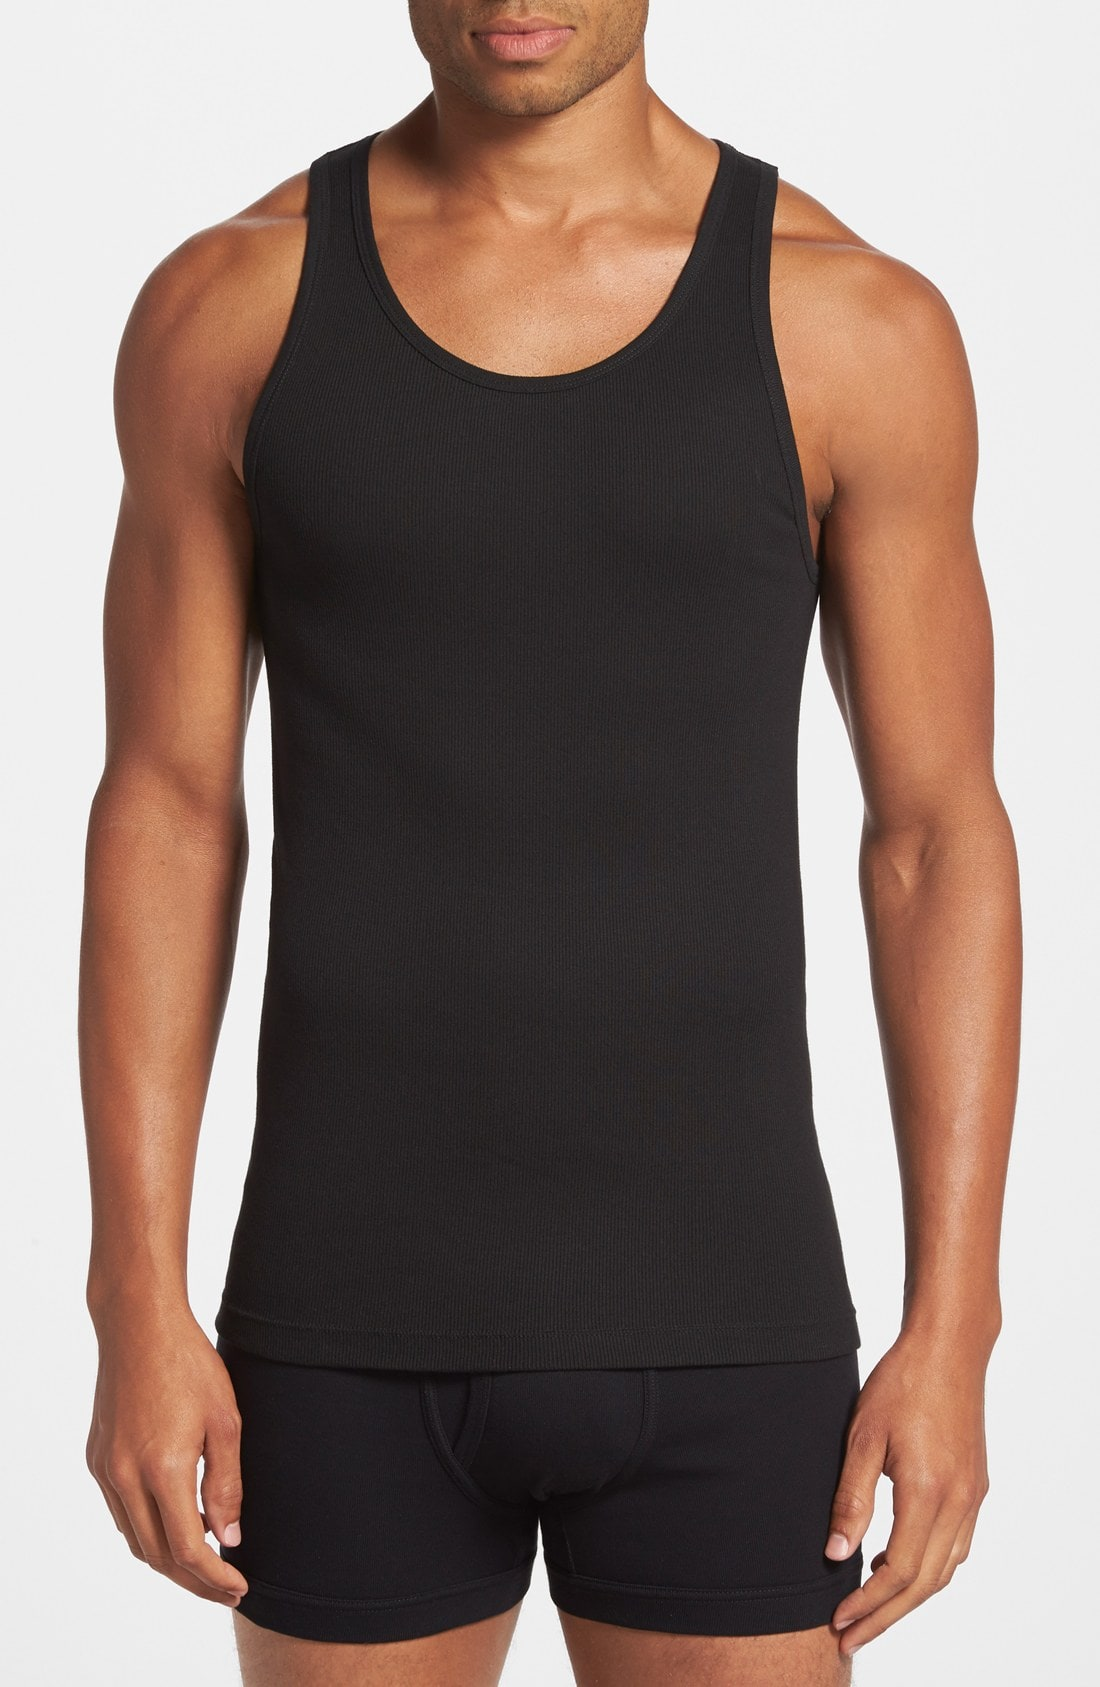 Men's Tank Tops | Nordstrom